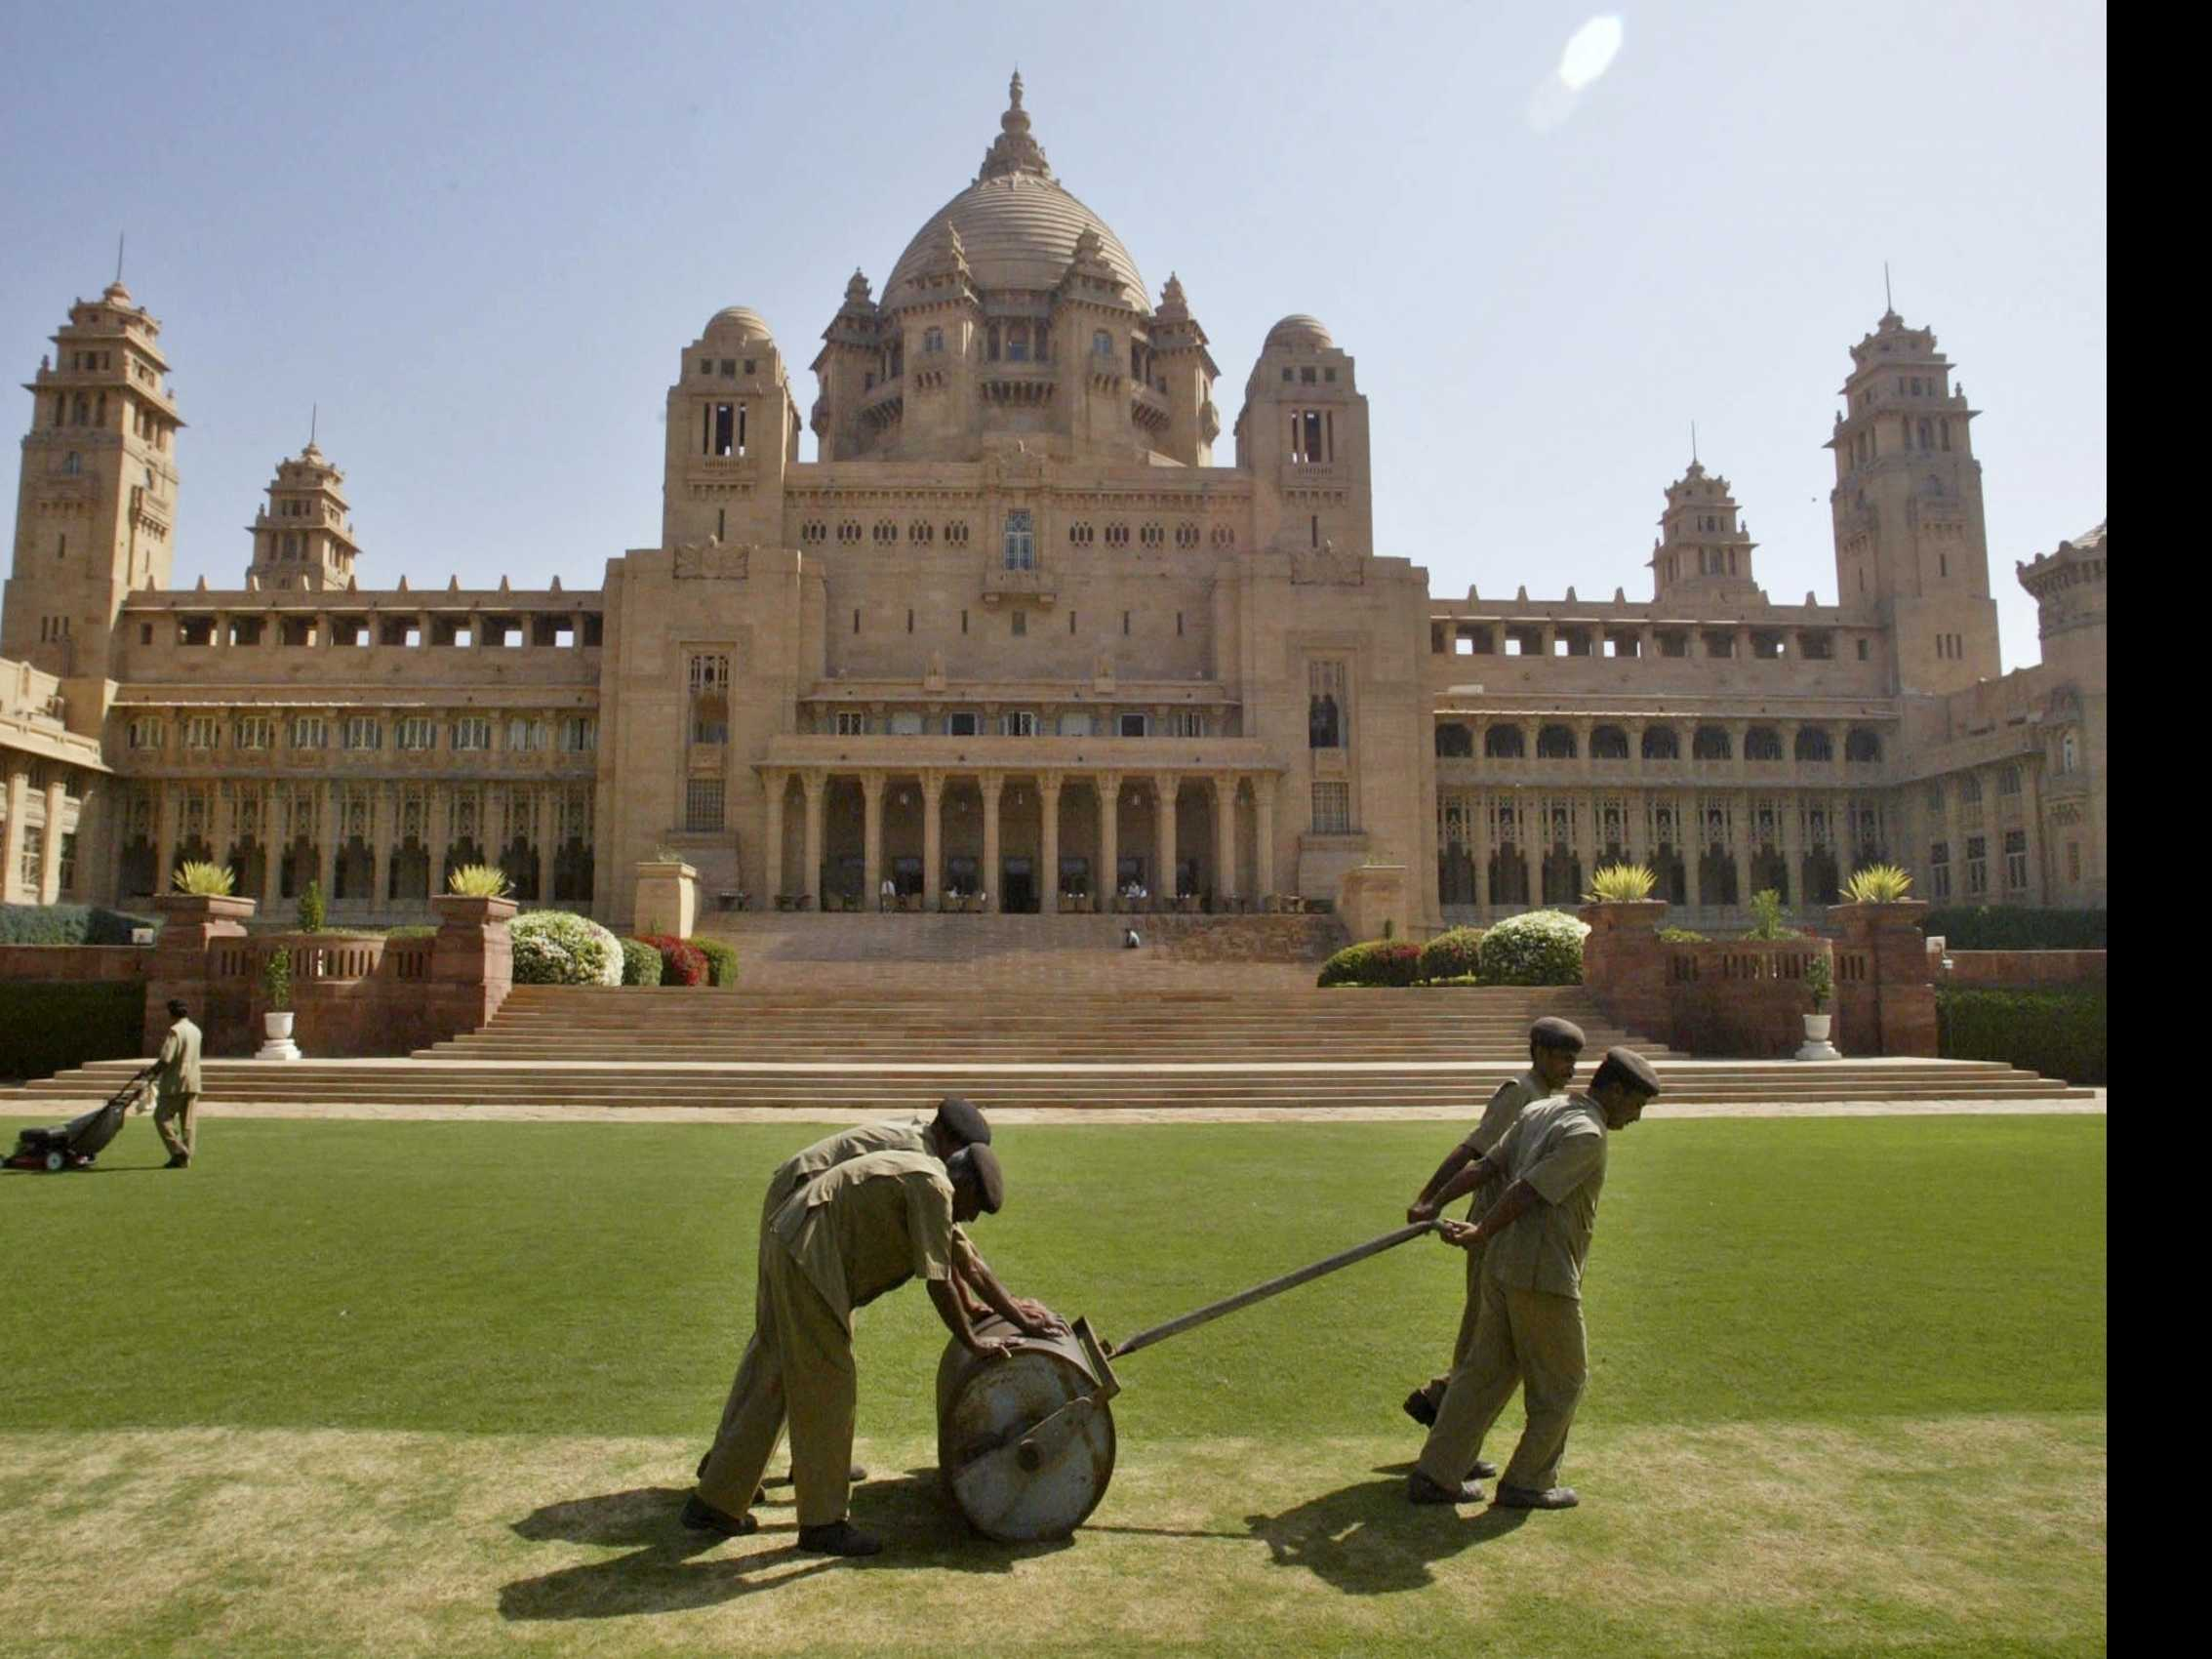 7 Decades Into Indian Democracy, A Royal Palace Thrives